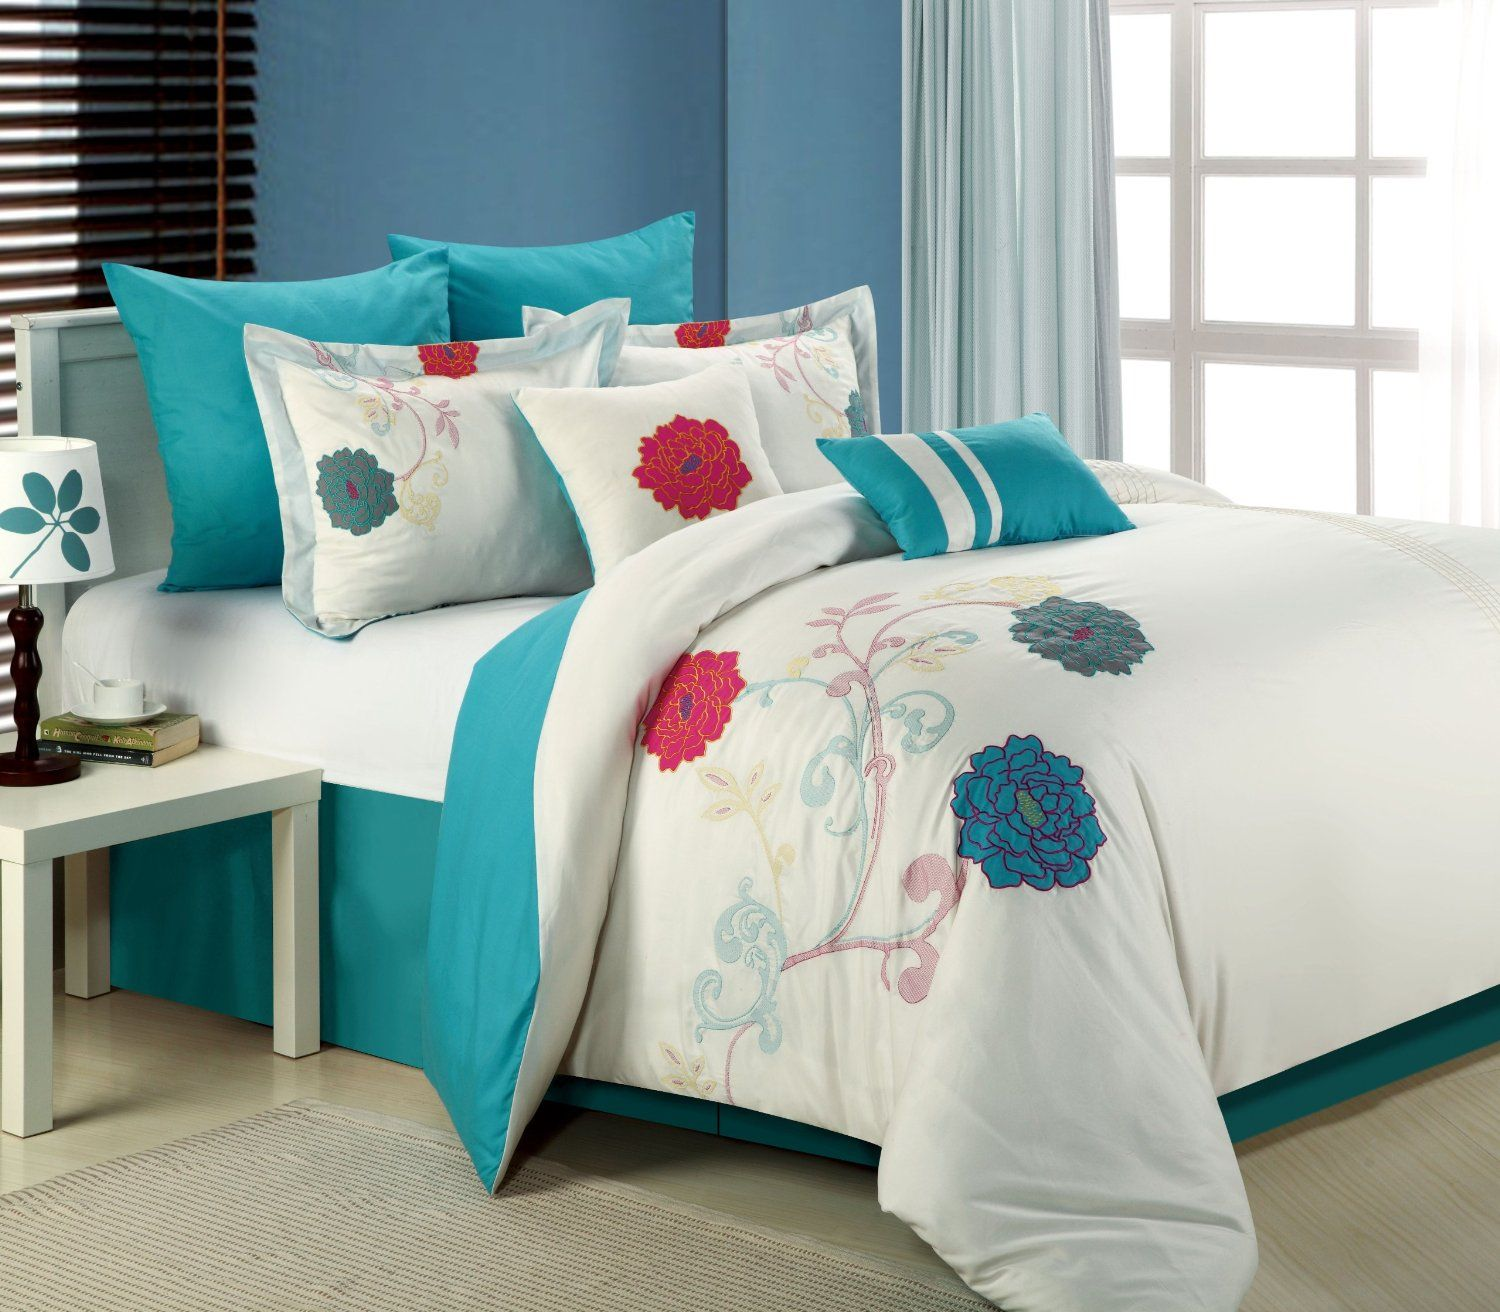 design gray bedding navy blue curtains best bed of home king unique ideas brown teal and set coral sets matching dark ly comforter